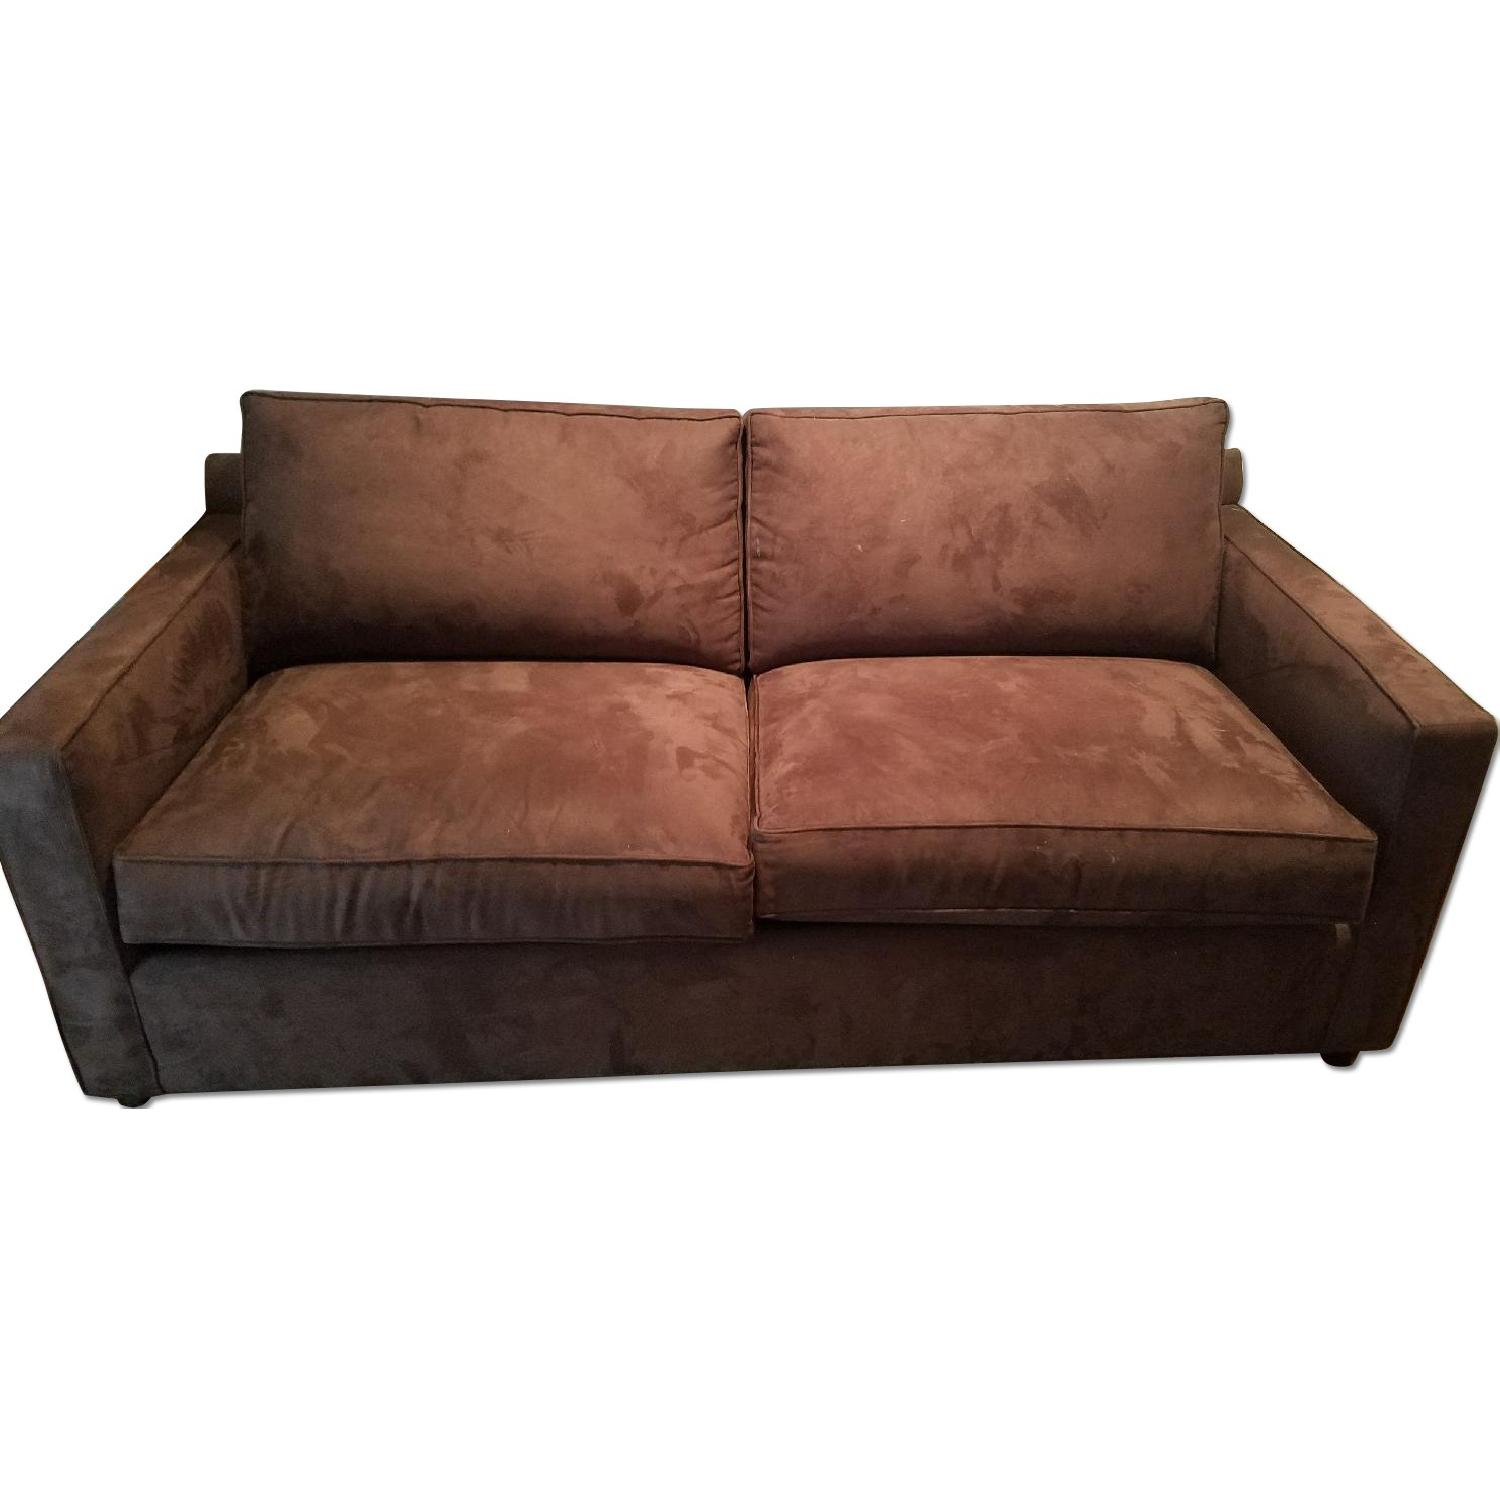 Sofa Queen Crate Barrel Davis Queen Pull Out Sofa